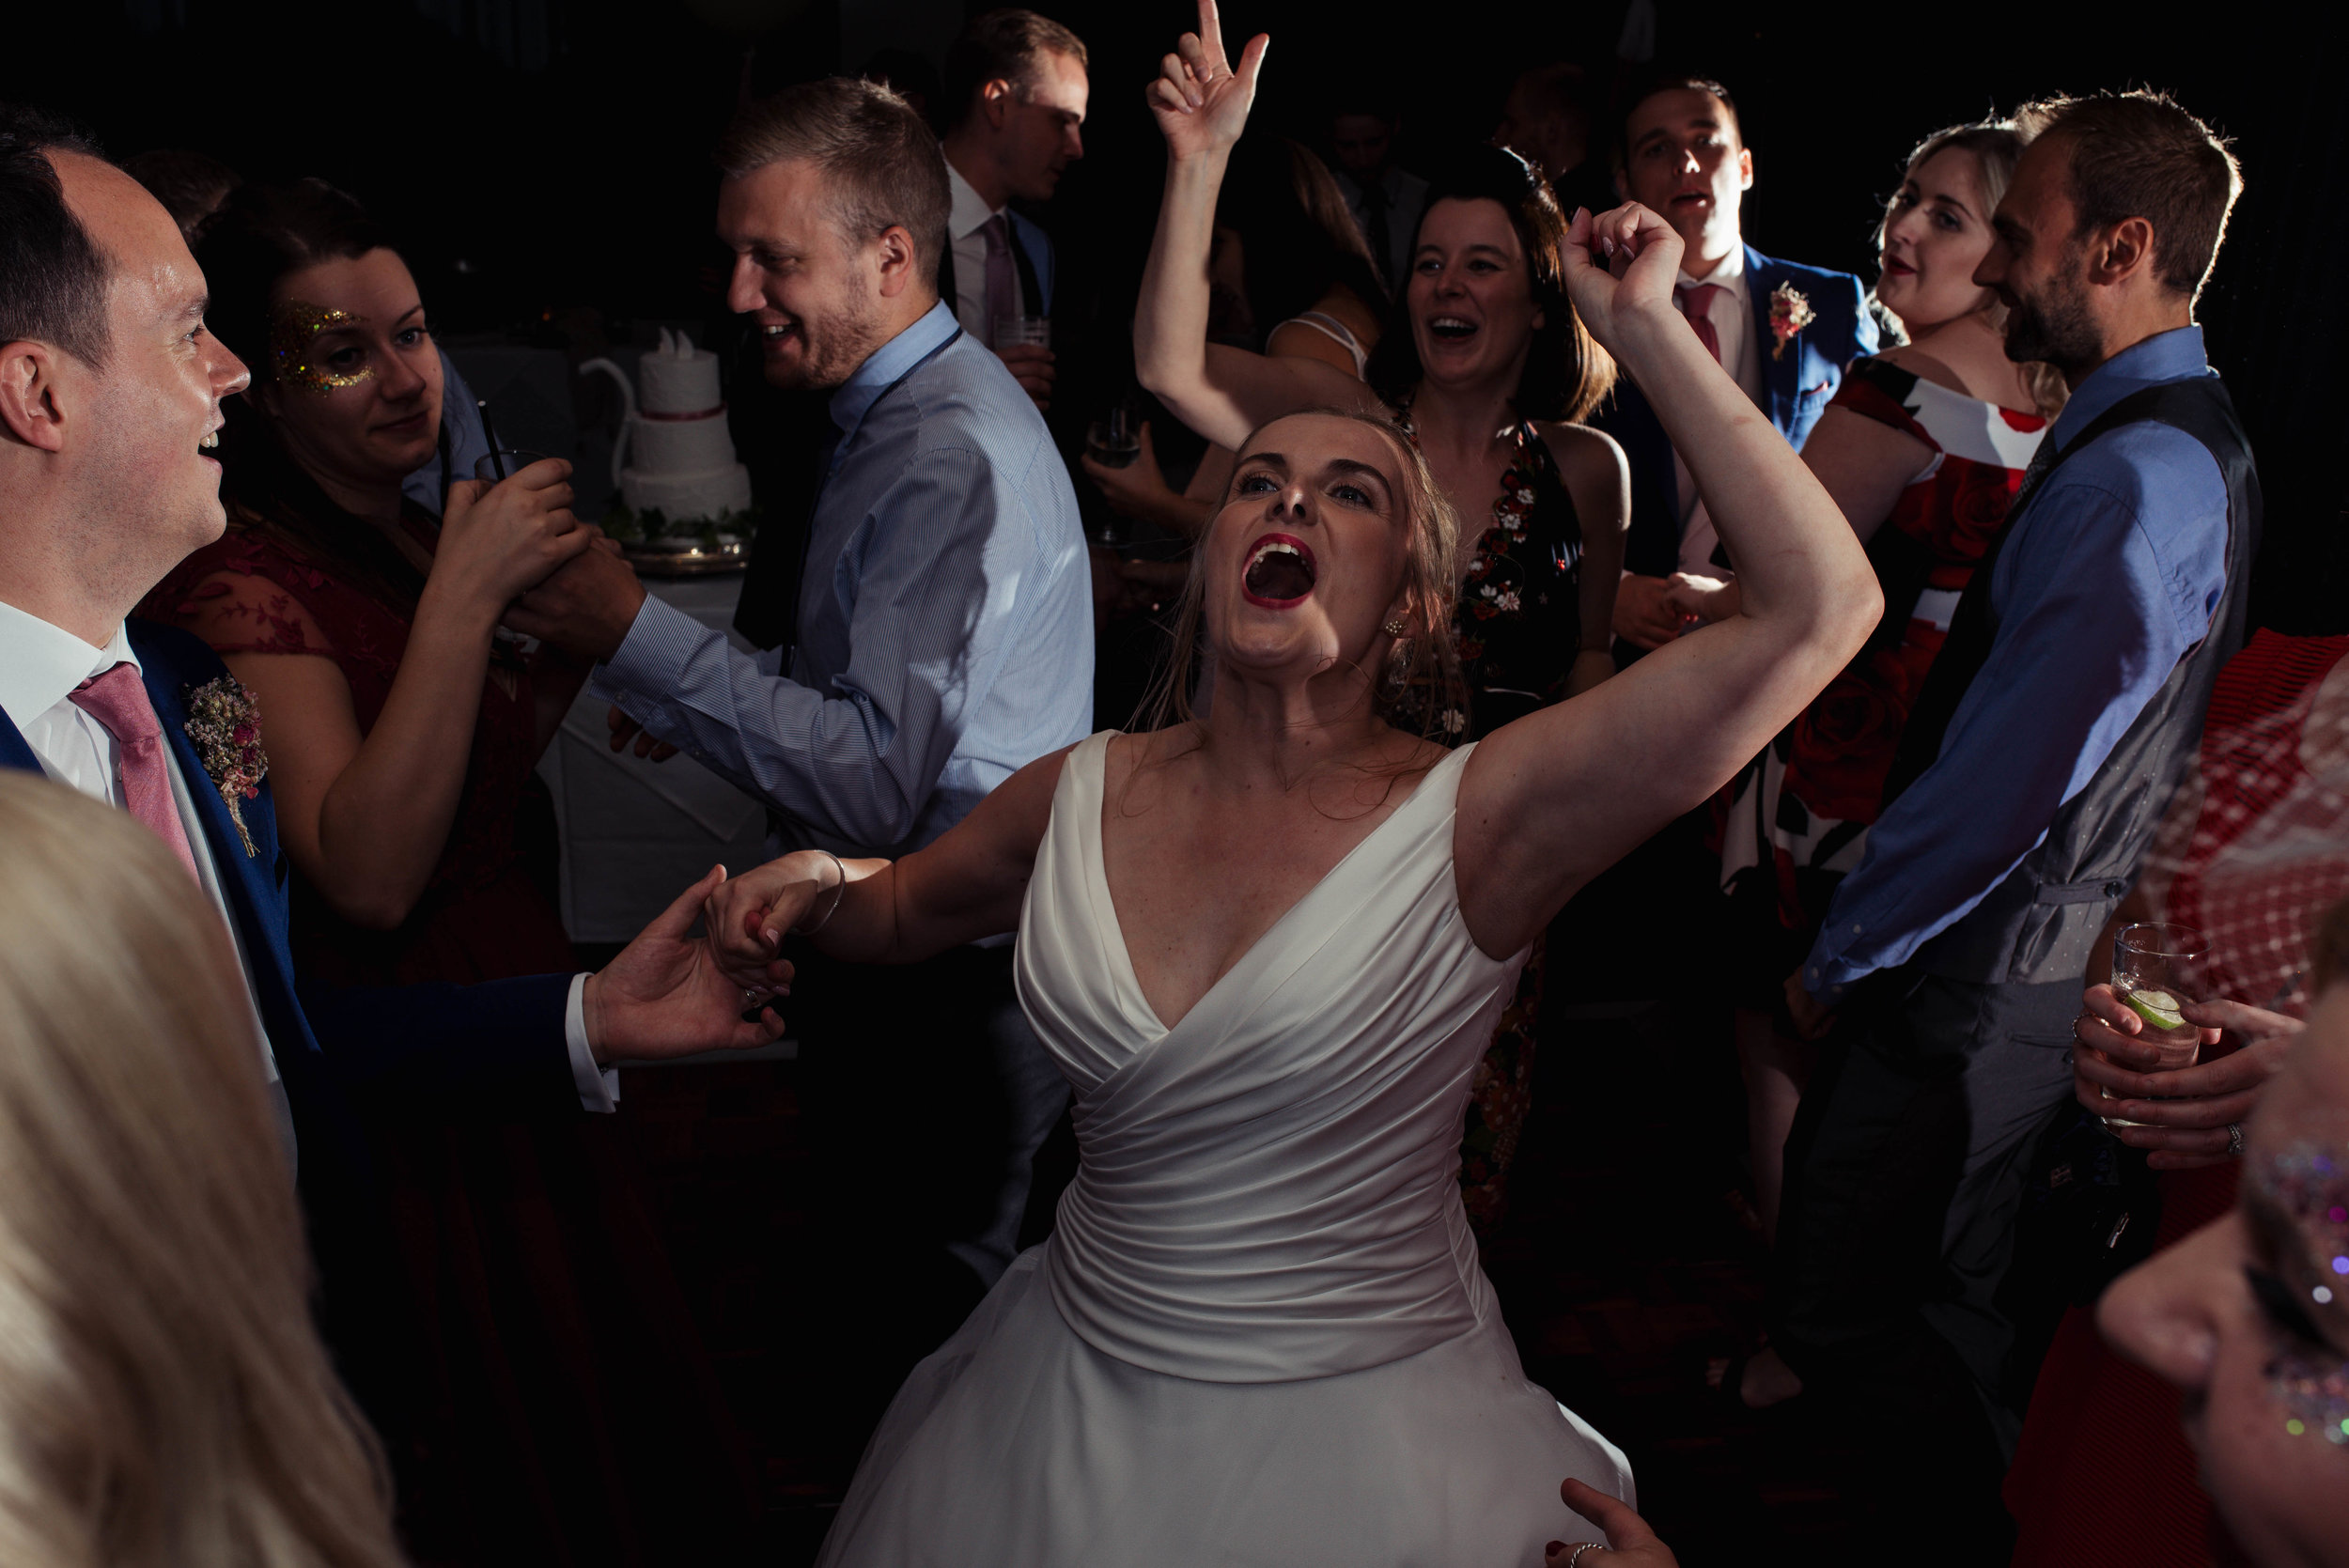 The bride letting her hair down with her friends on the dance floor